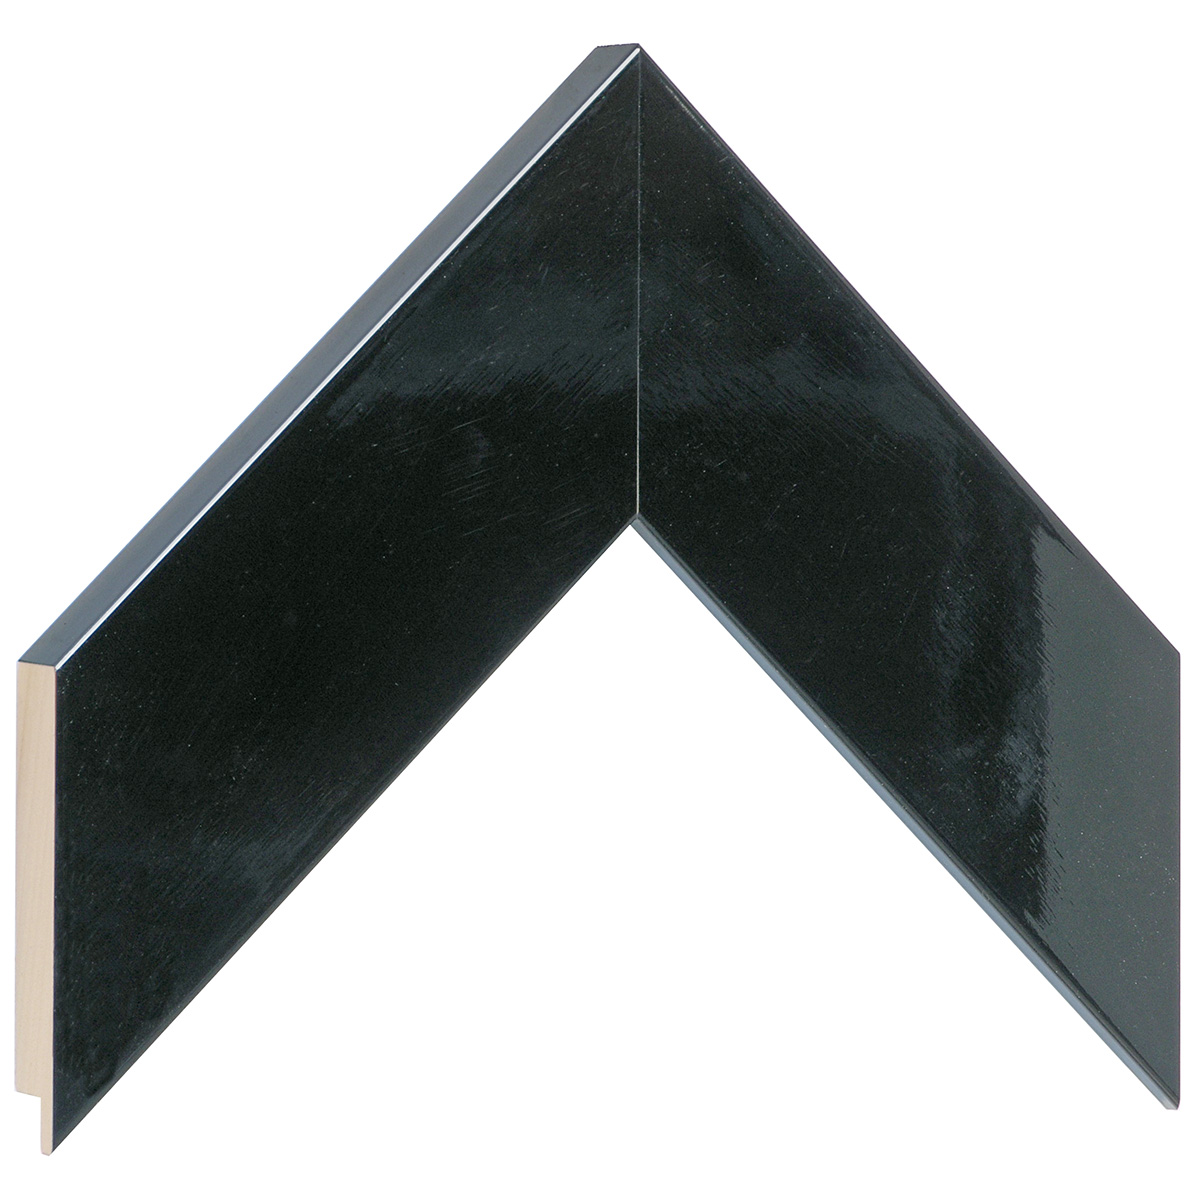 Moulding ayous, width 58mm height 20 - bright black